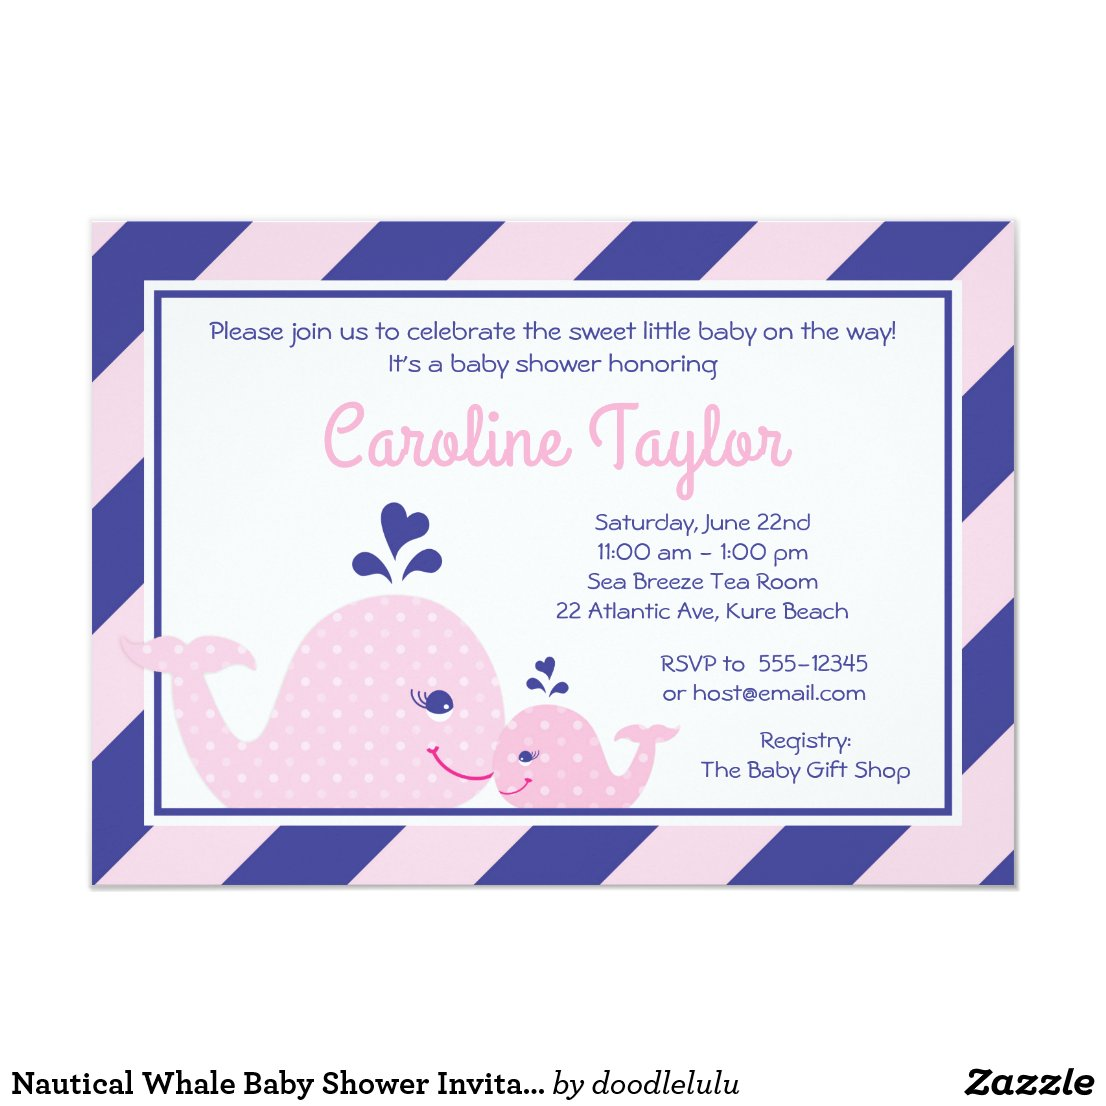 Nautical Whale Baby Shower Invitation pink & navy